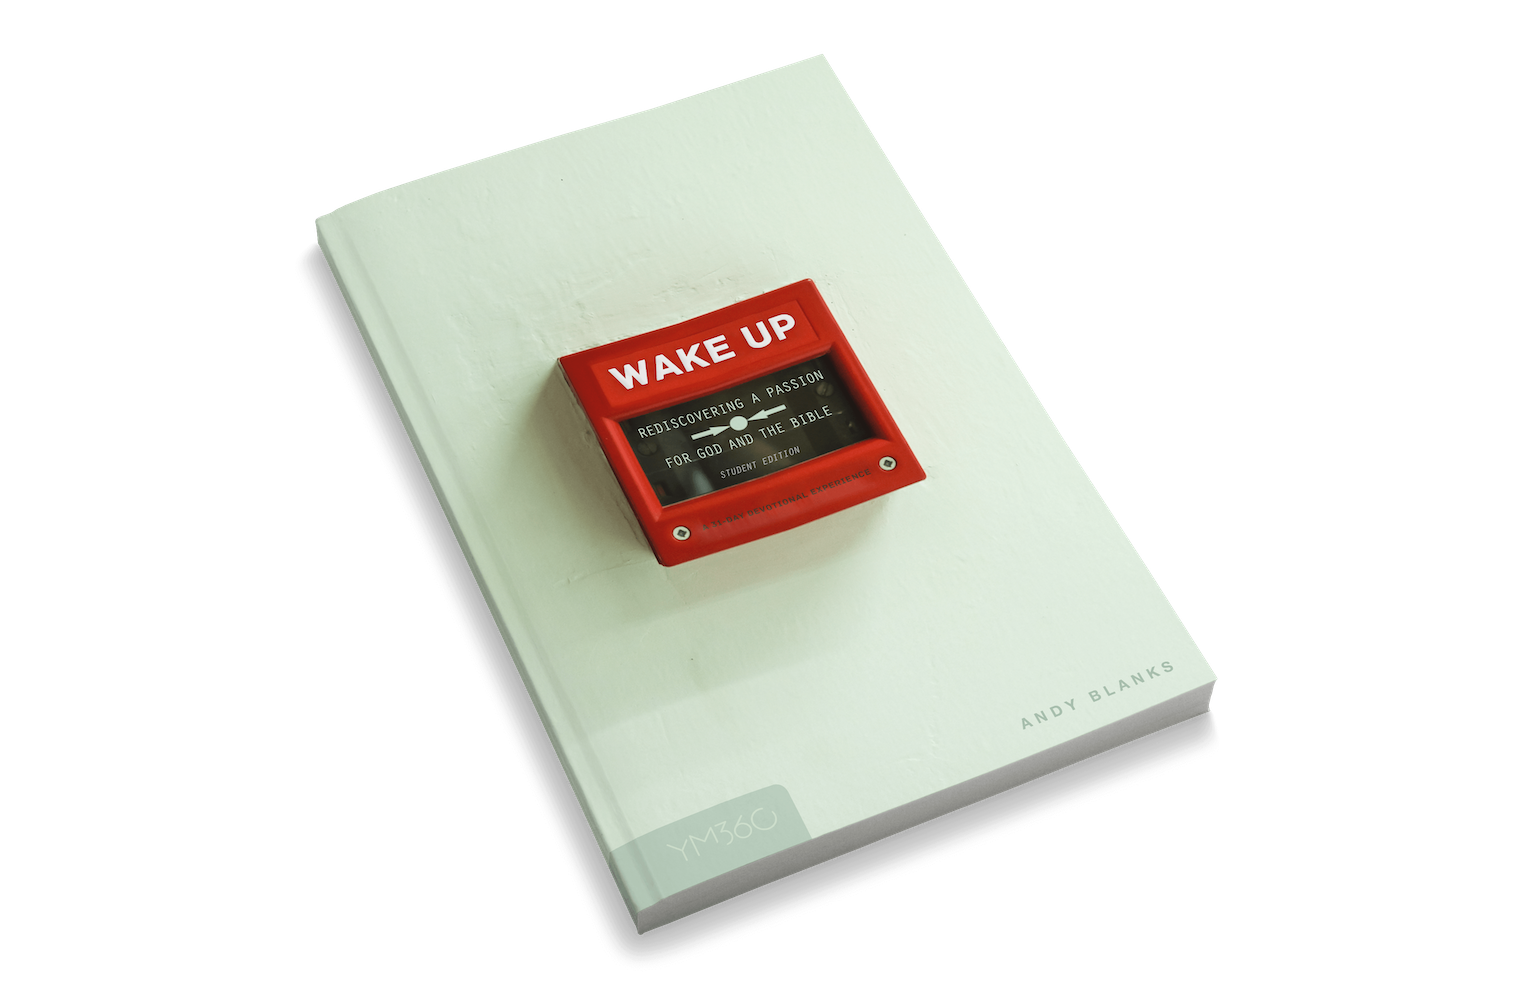 Wake Up: Rediscovering A Passion for God and the Bible [Student Edition]